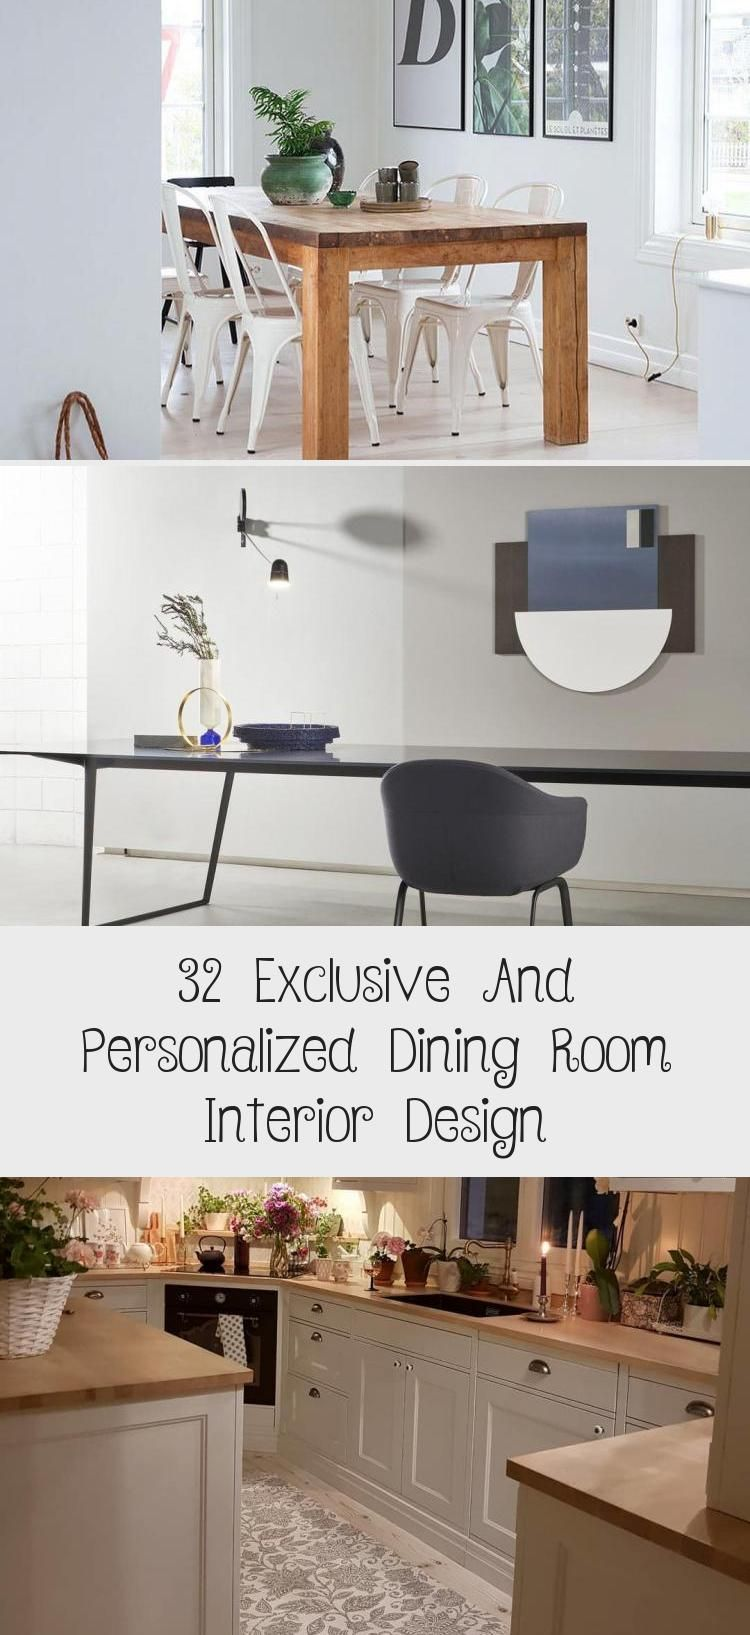 32 Exclusive And Personalized Dining Room Interior Design – İnformation Decor